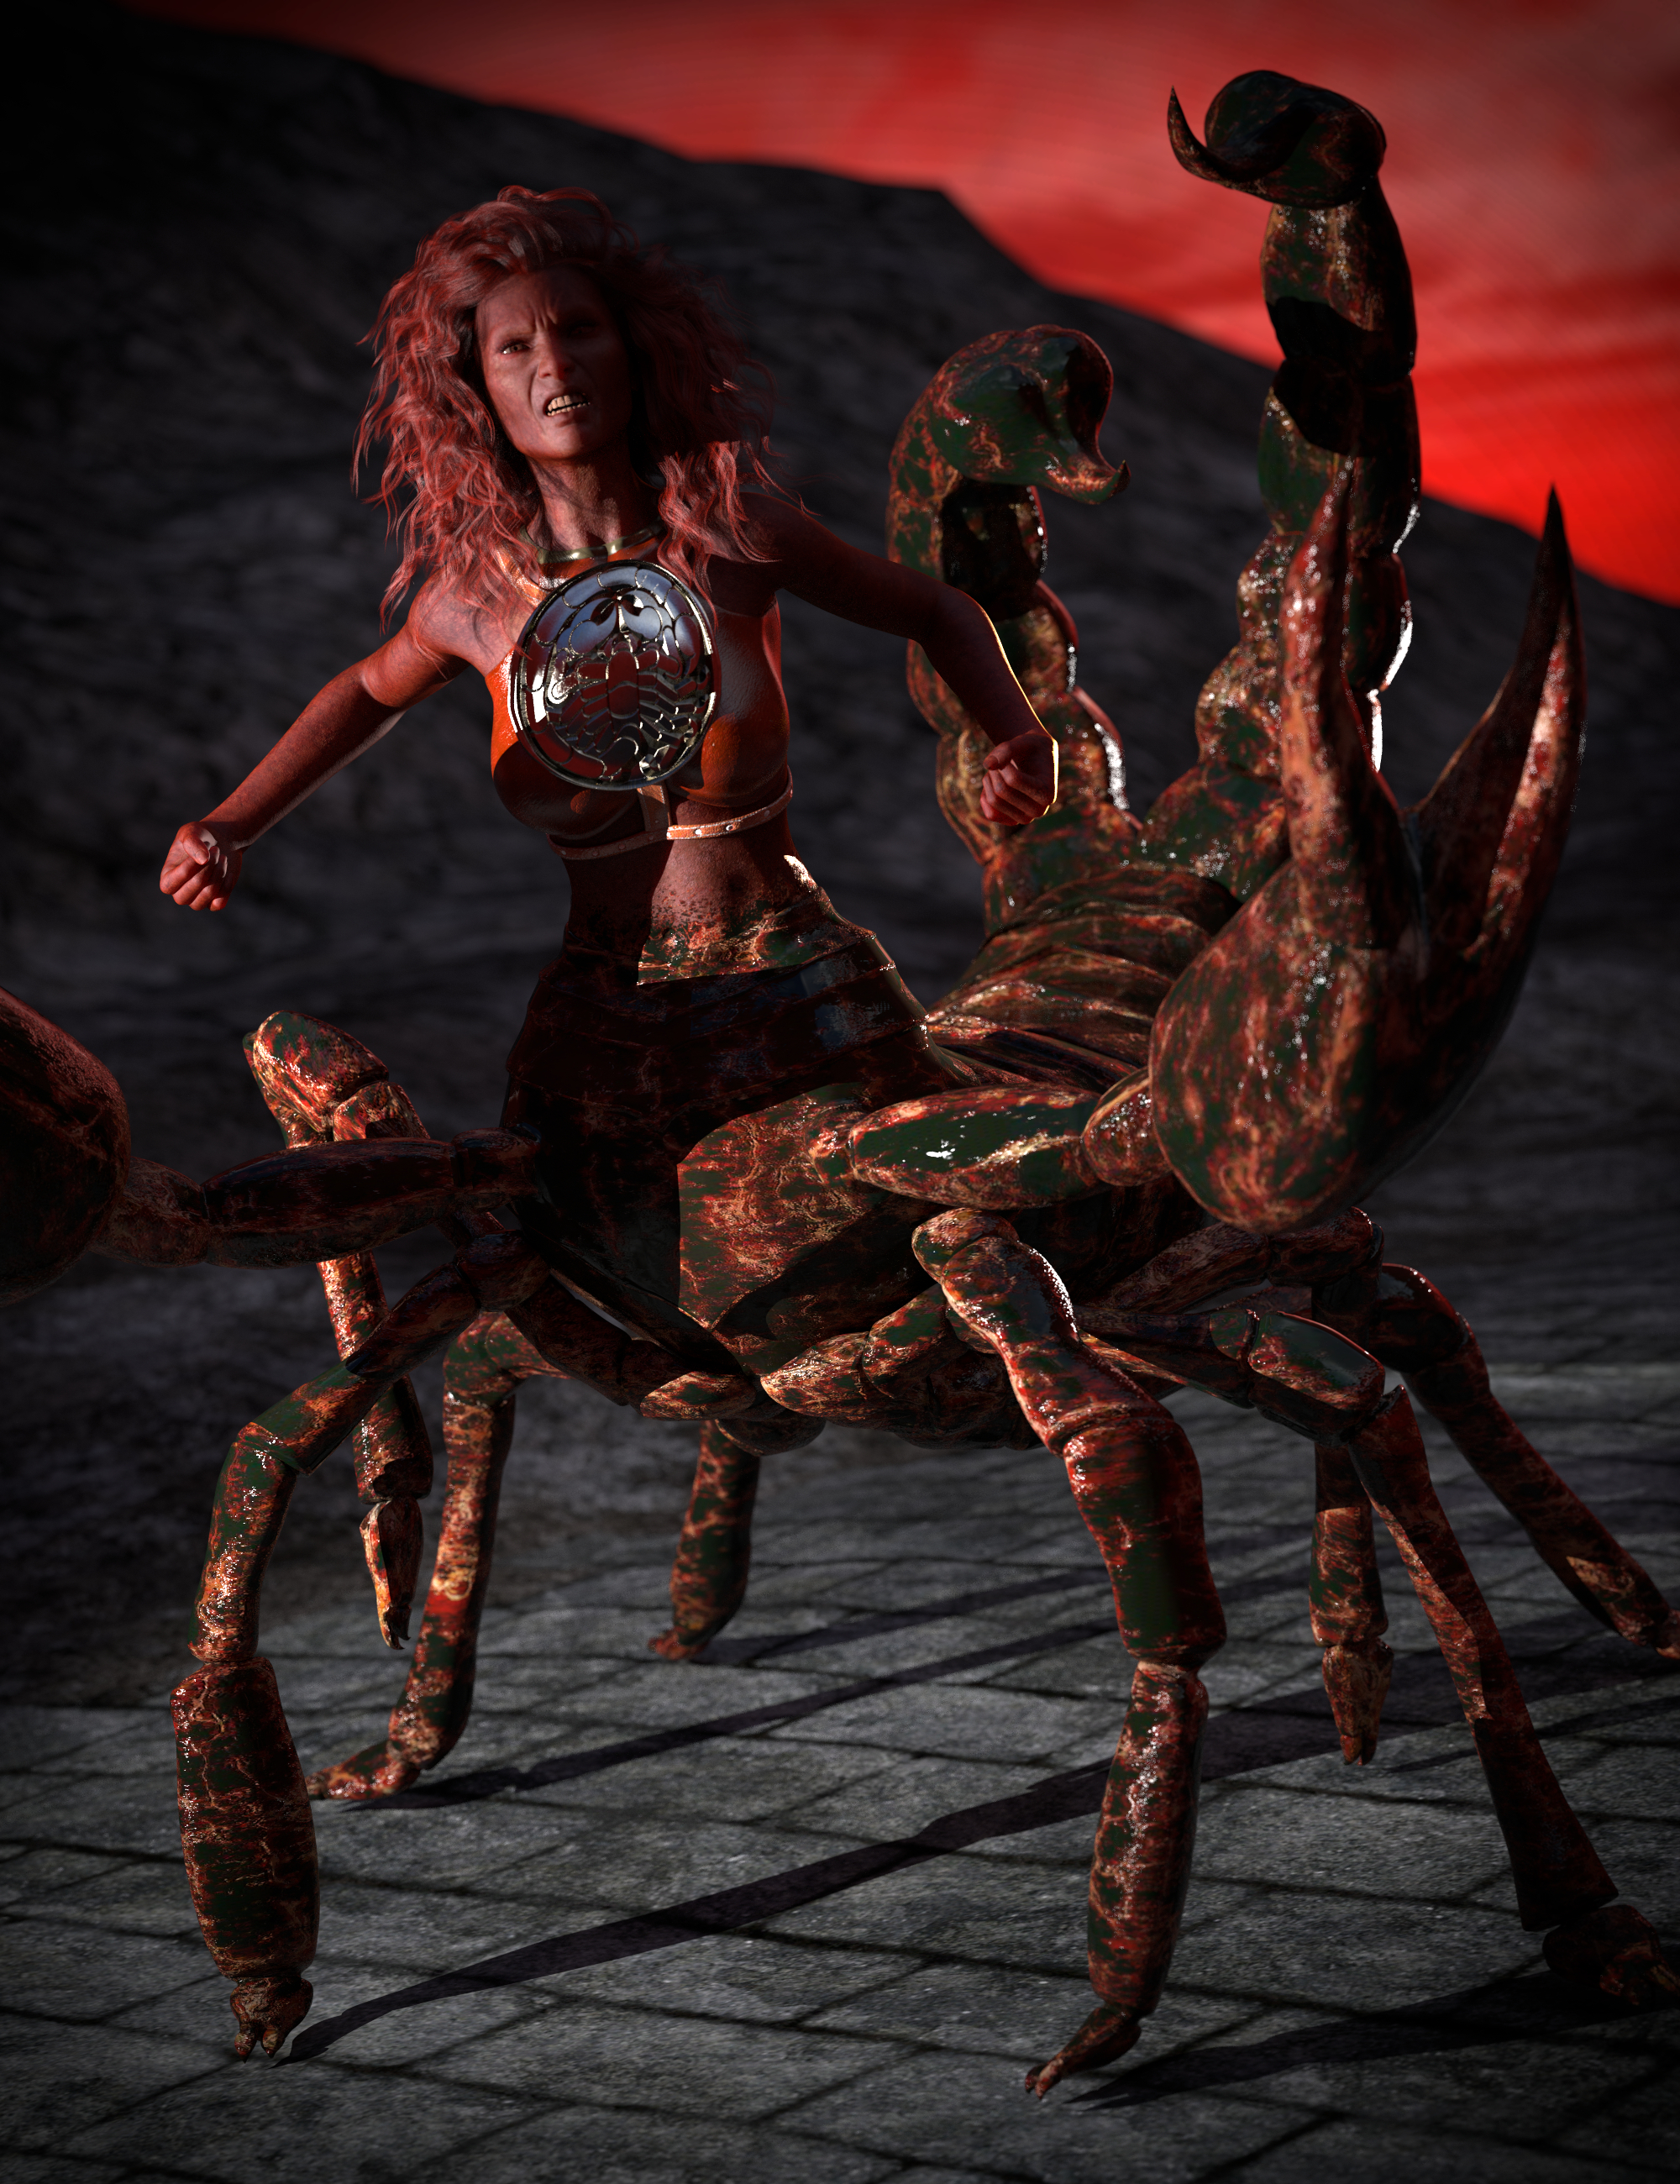 SYS Monsters in the Dark Textures for SY Scorpion Folk by: SickleyieldSade, 3D Models by Daz 3D